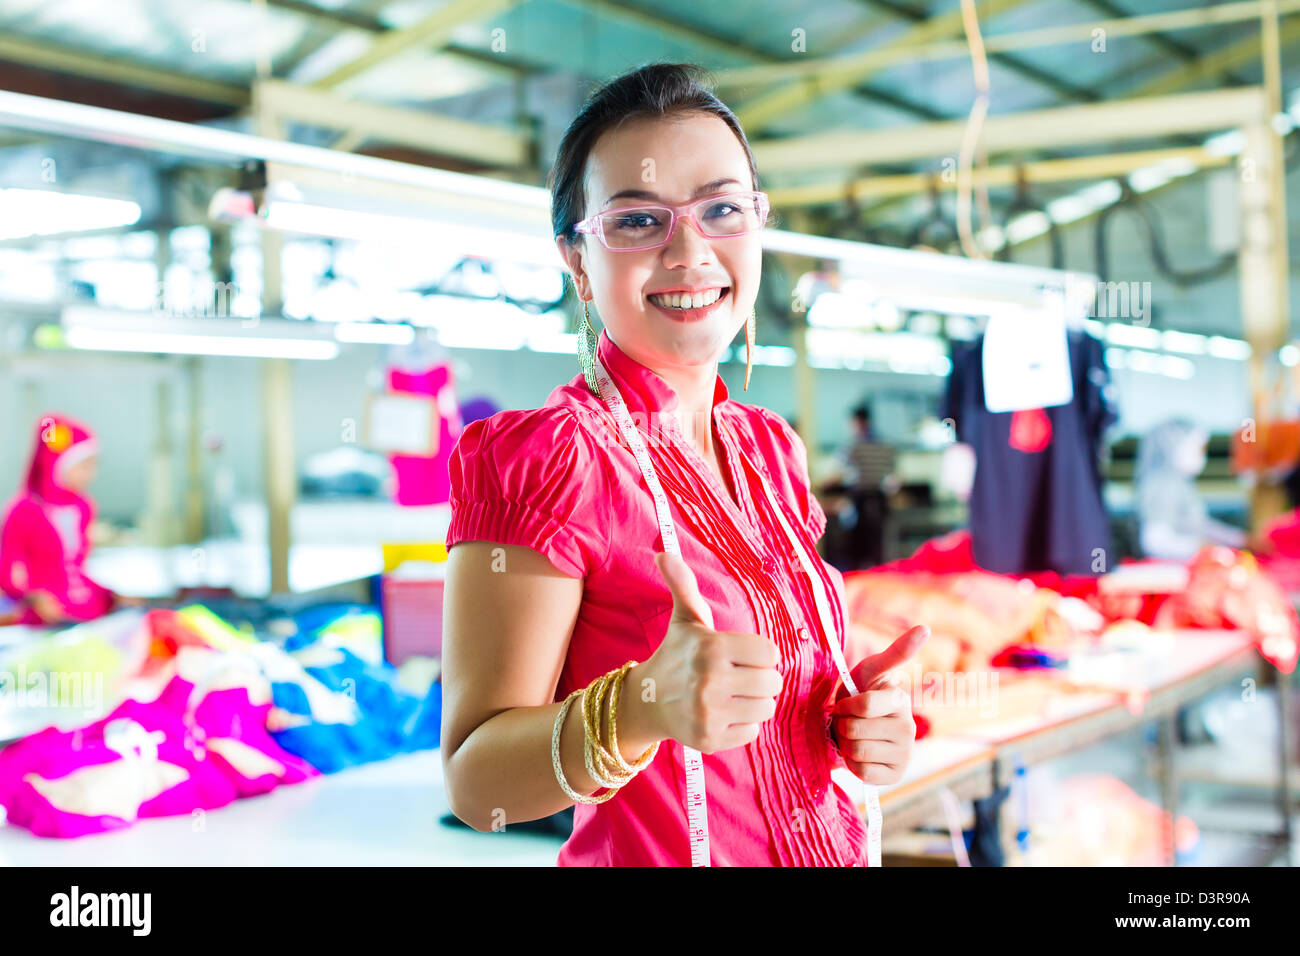 Female Chinese asian dressmaker or designer standing proudly in a textile factory, it is her workplace - Stock Image